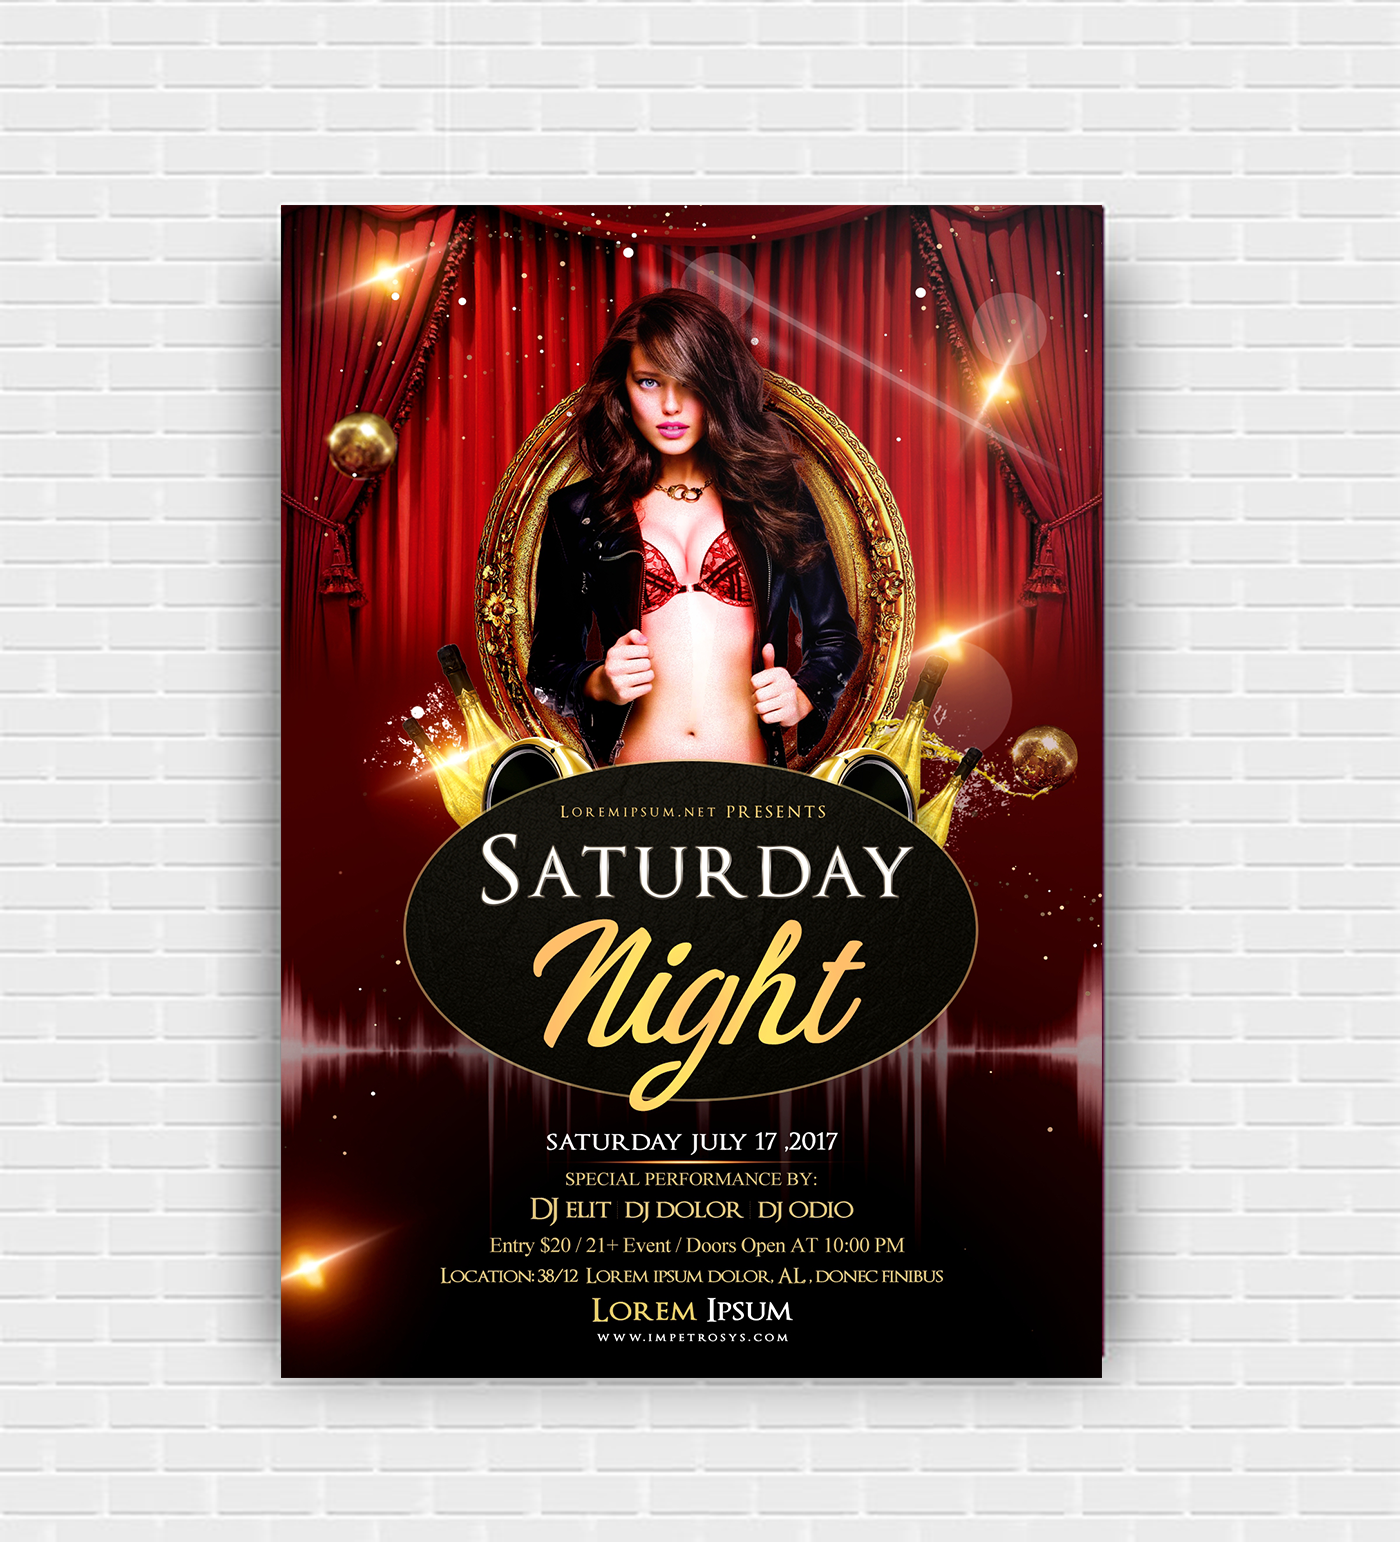 Dj Event Flyer Template Free | Event flyer templates, Event flyers ...